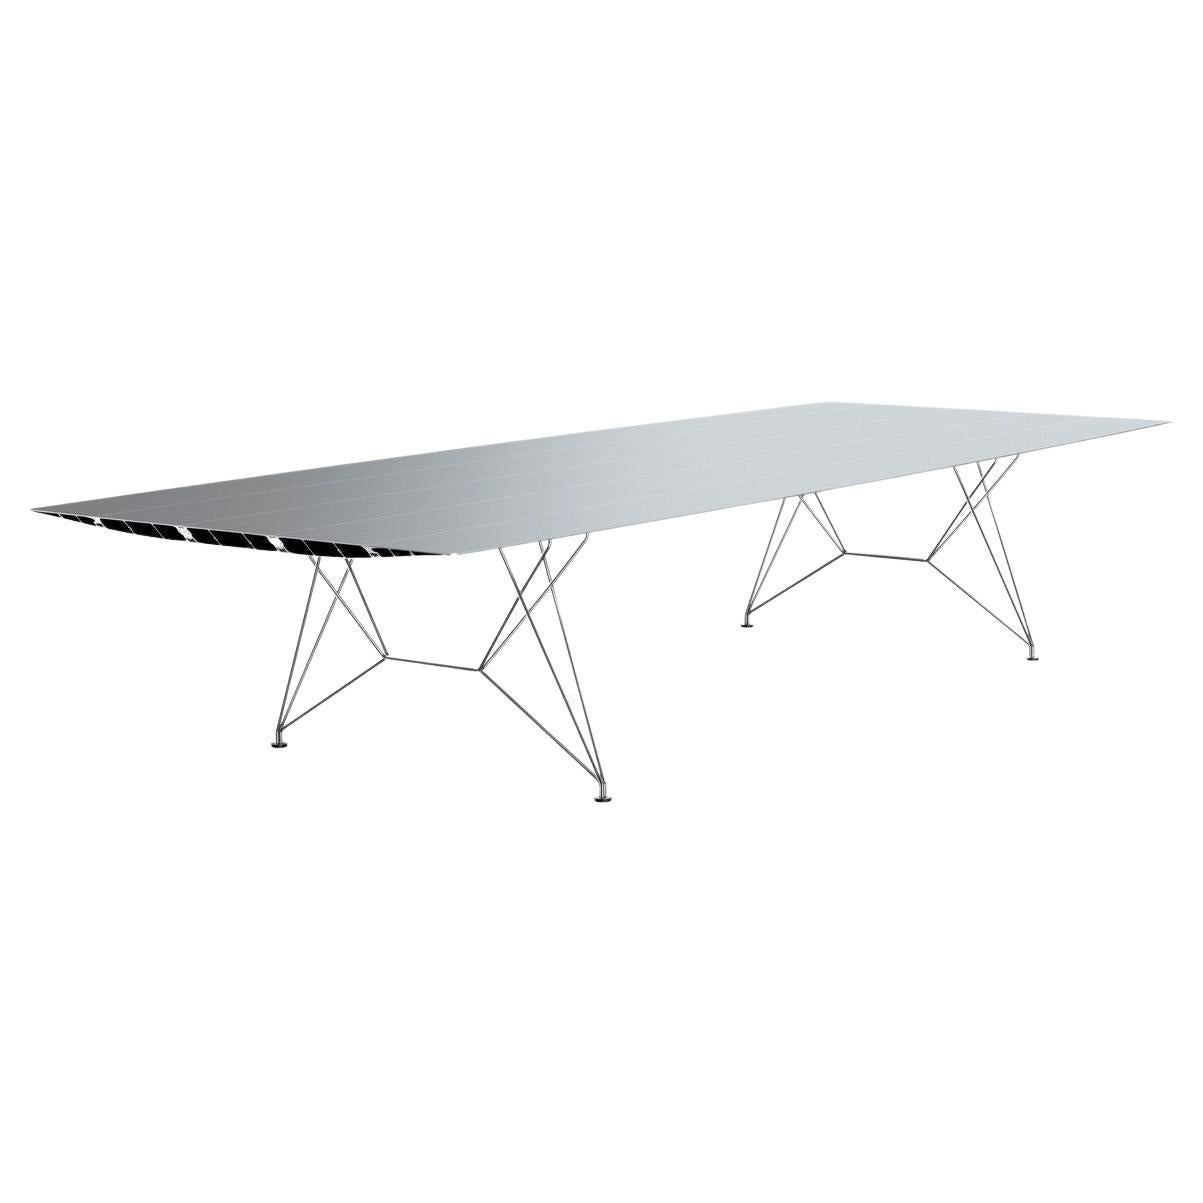 Big Stainless Steel Table B by Konstantin Grcic